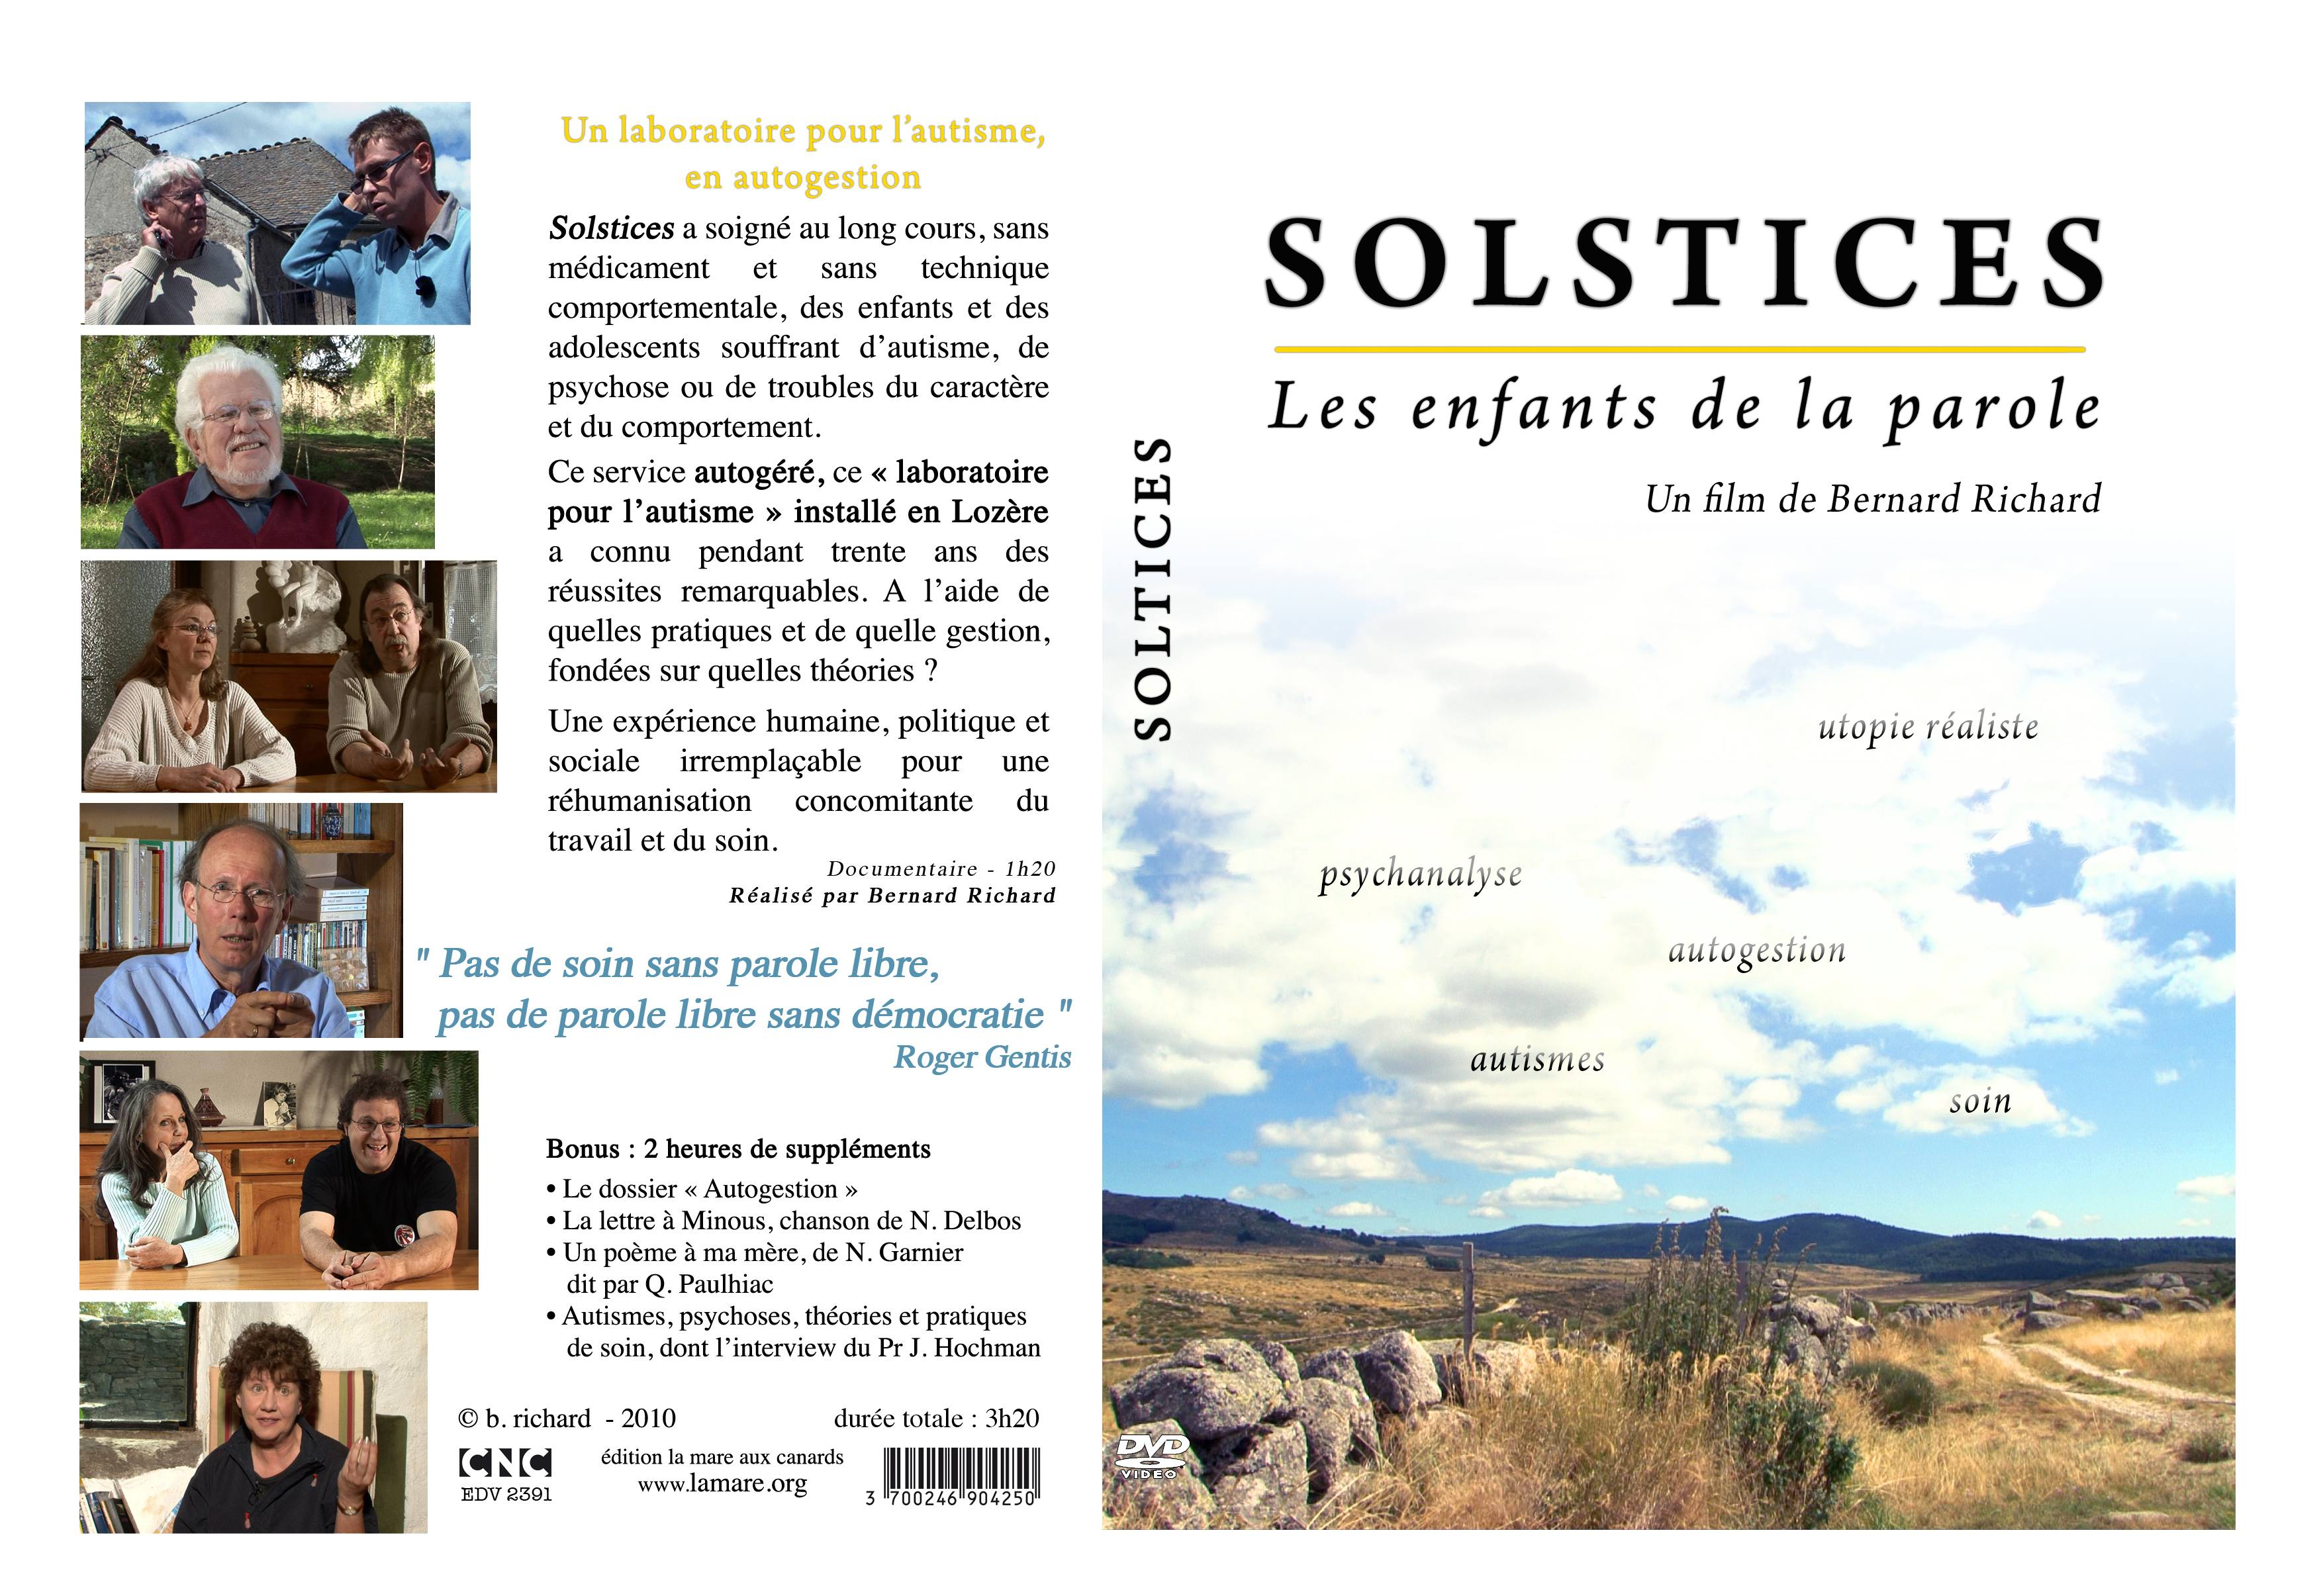 Solstices, un laboratoire de l'autisme en autogestion